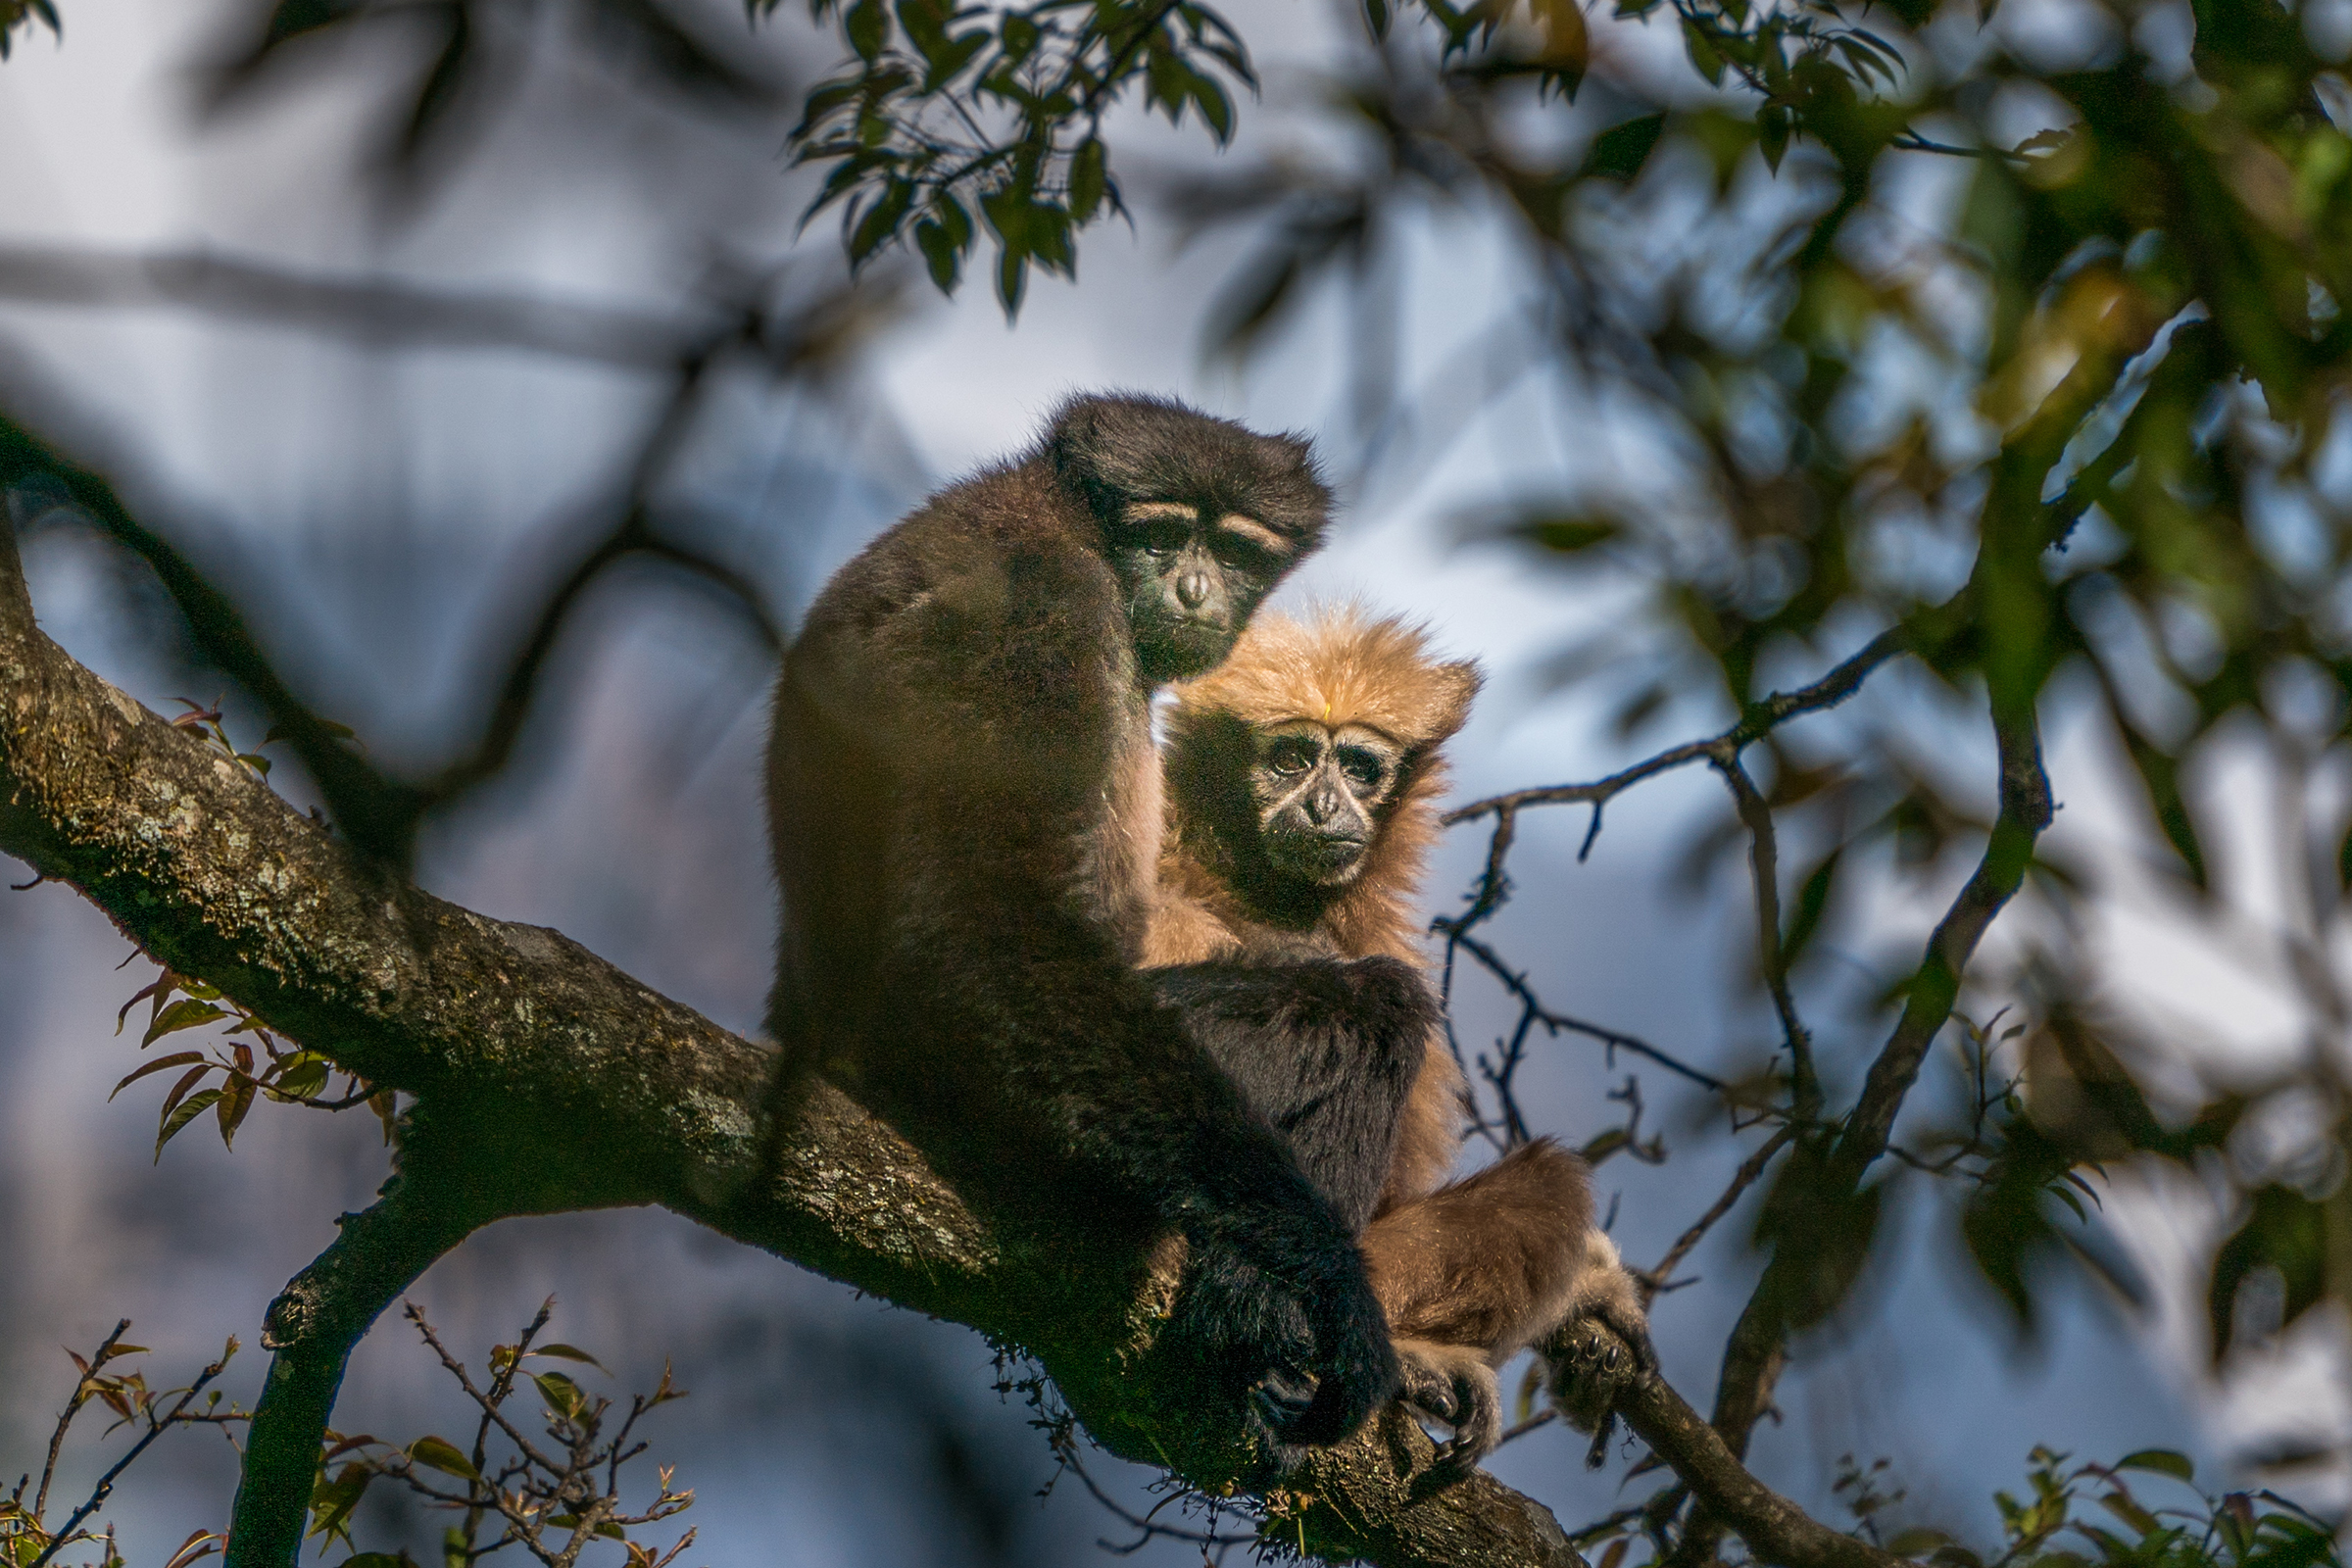 Two gibbons, which rangers have named Agong and Ama, sit together on a tree branch. Usually, it's Agong that finds himself grooming Ama.